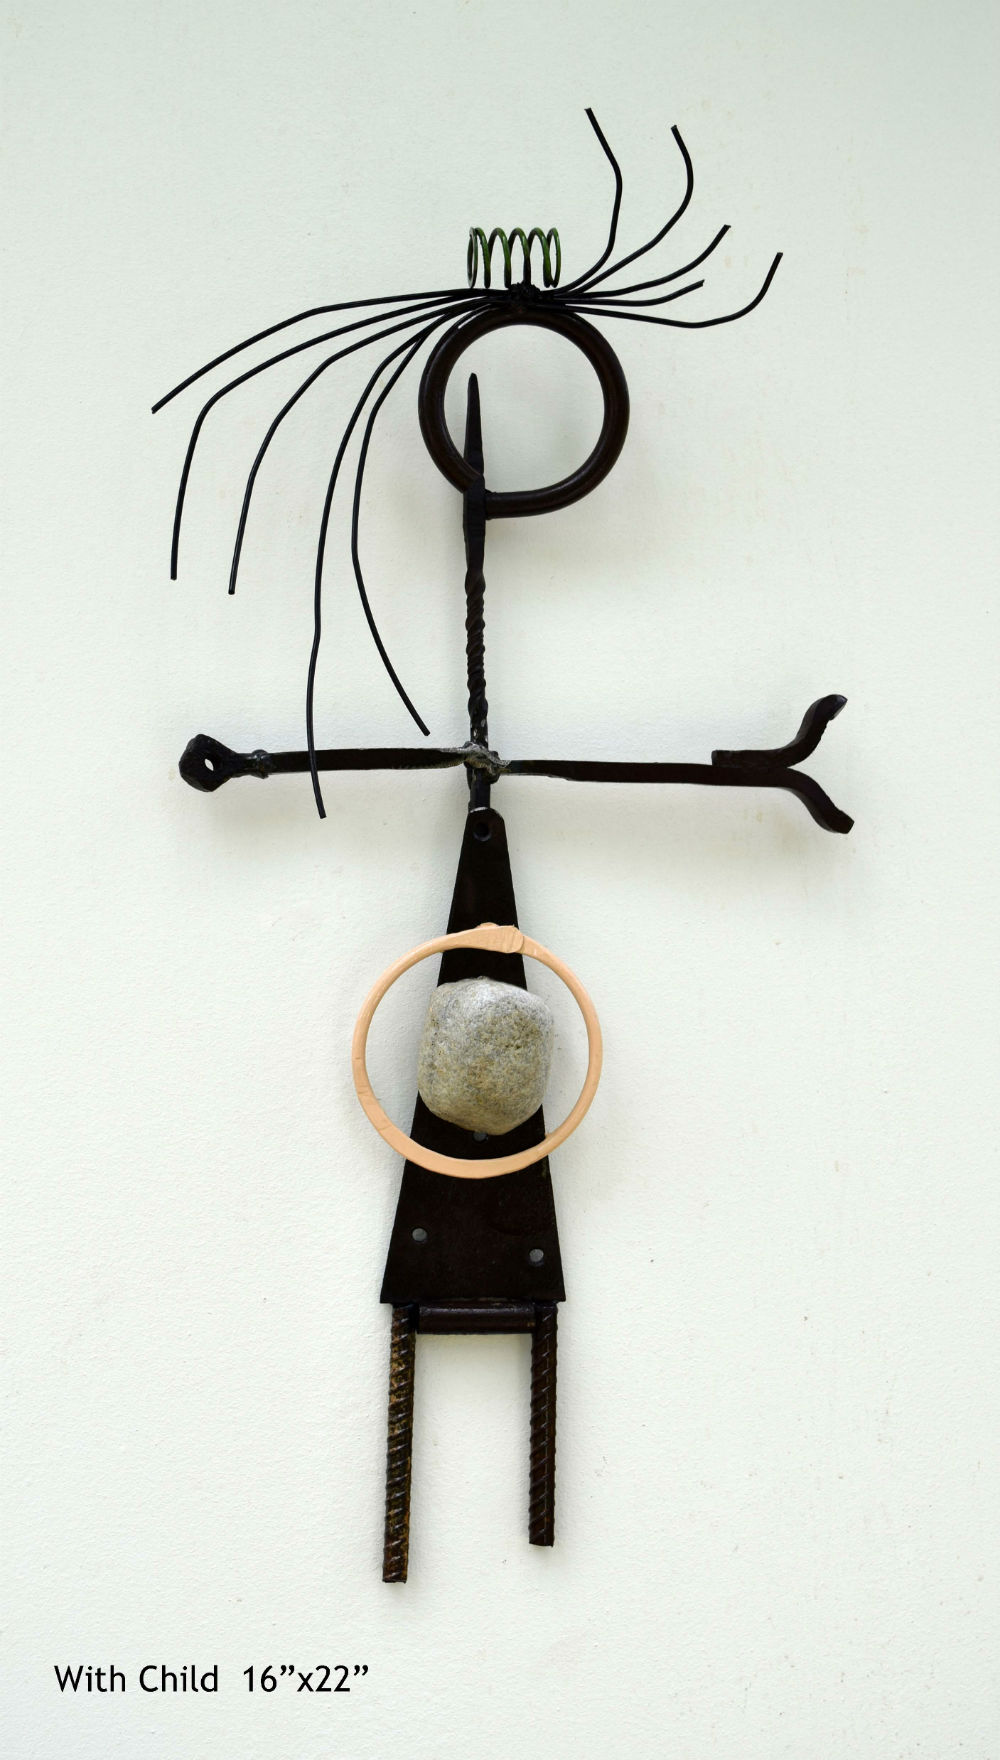 Walden2_opt.jpg